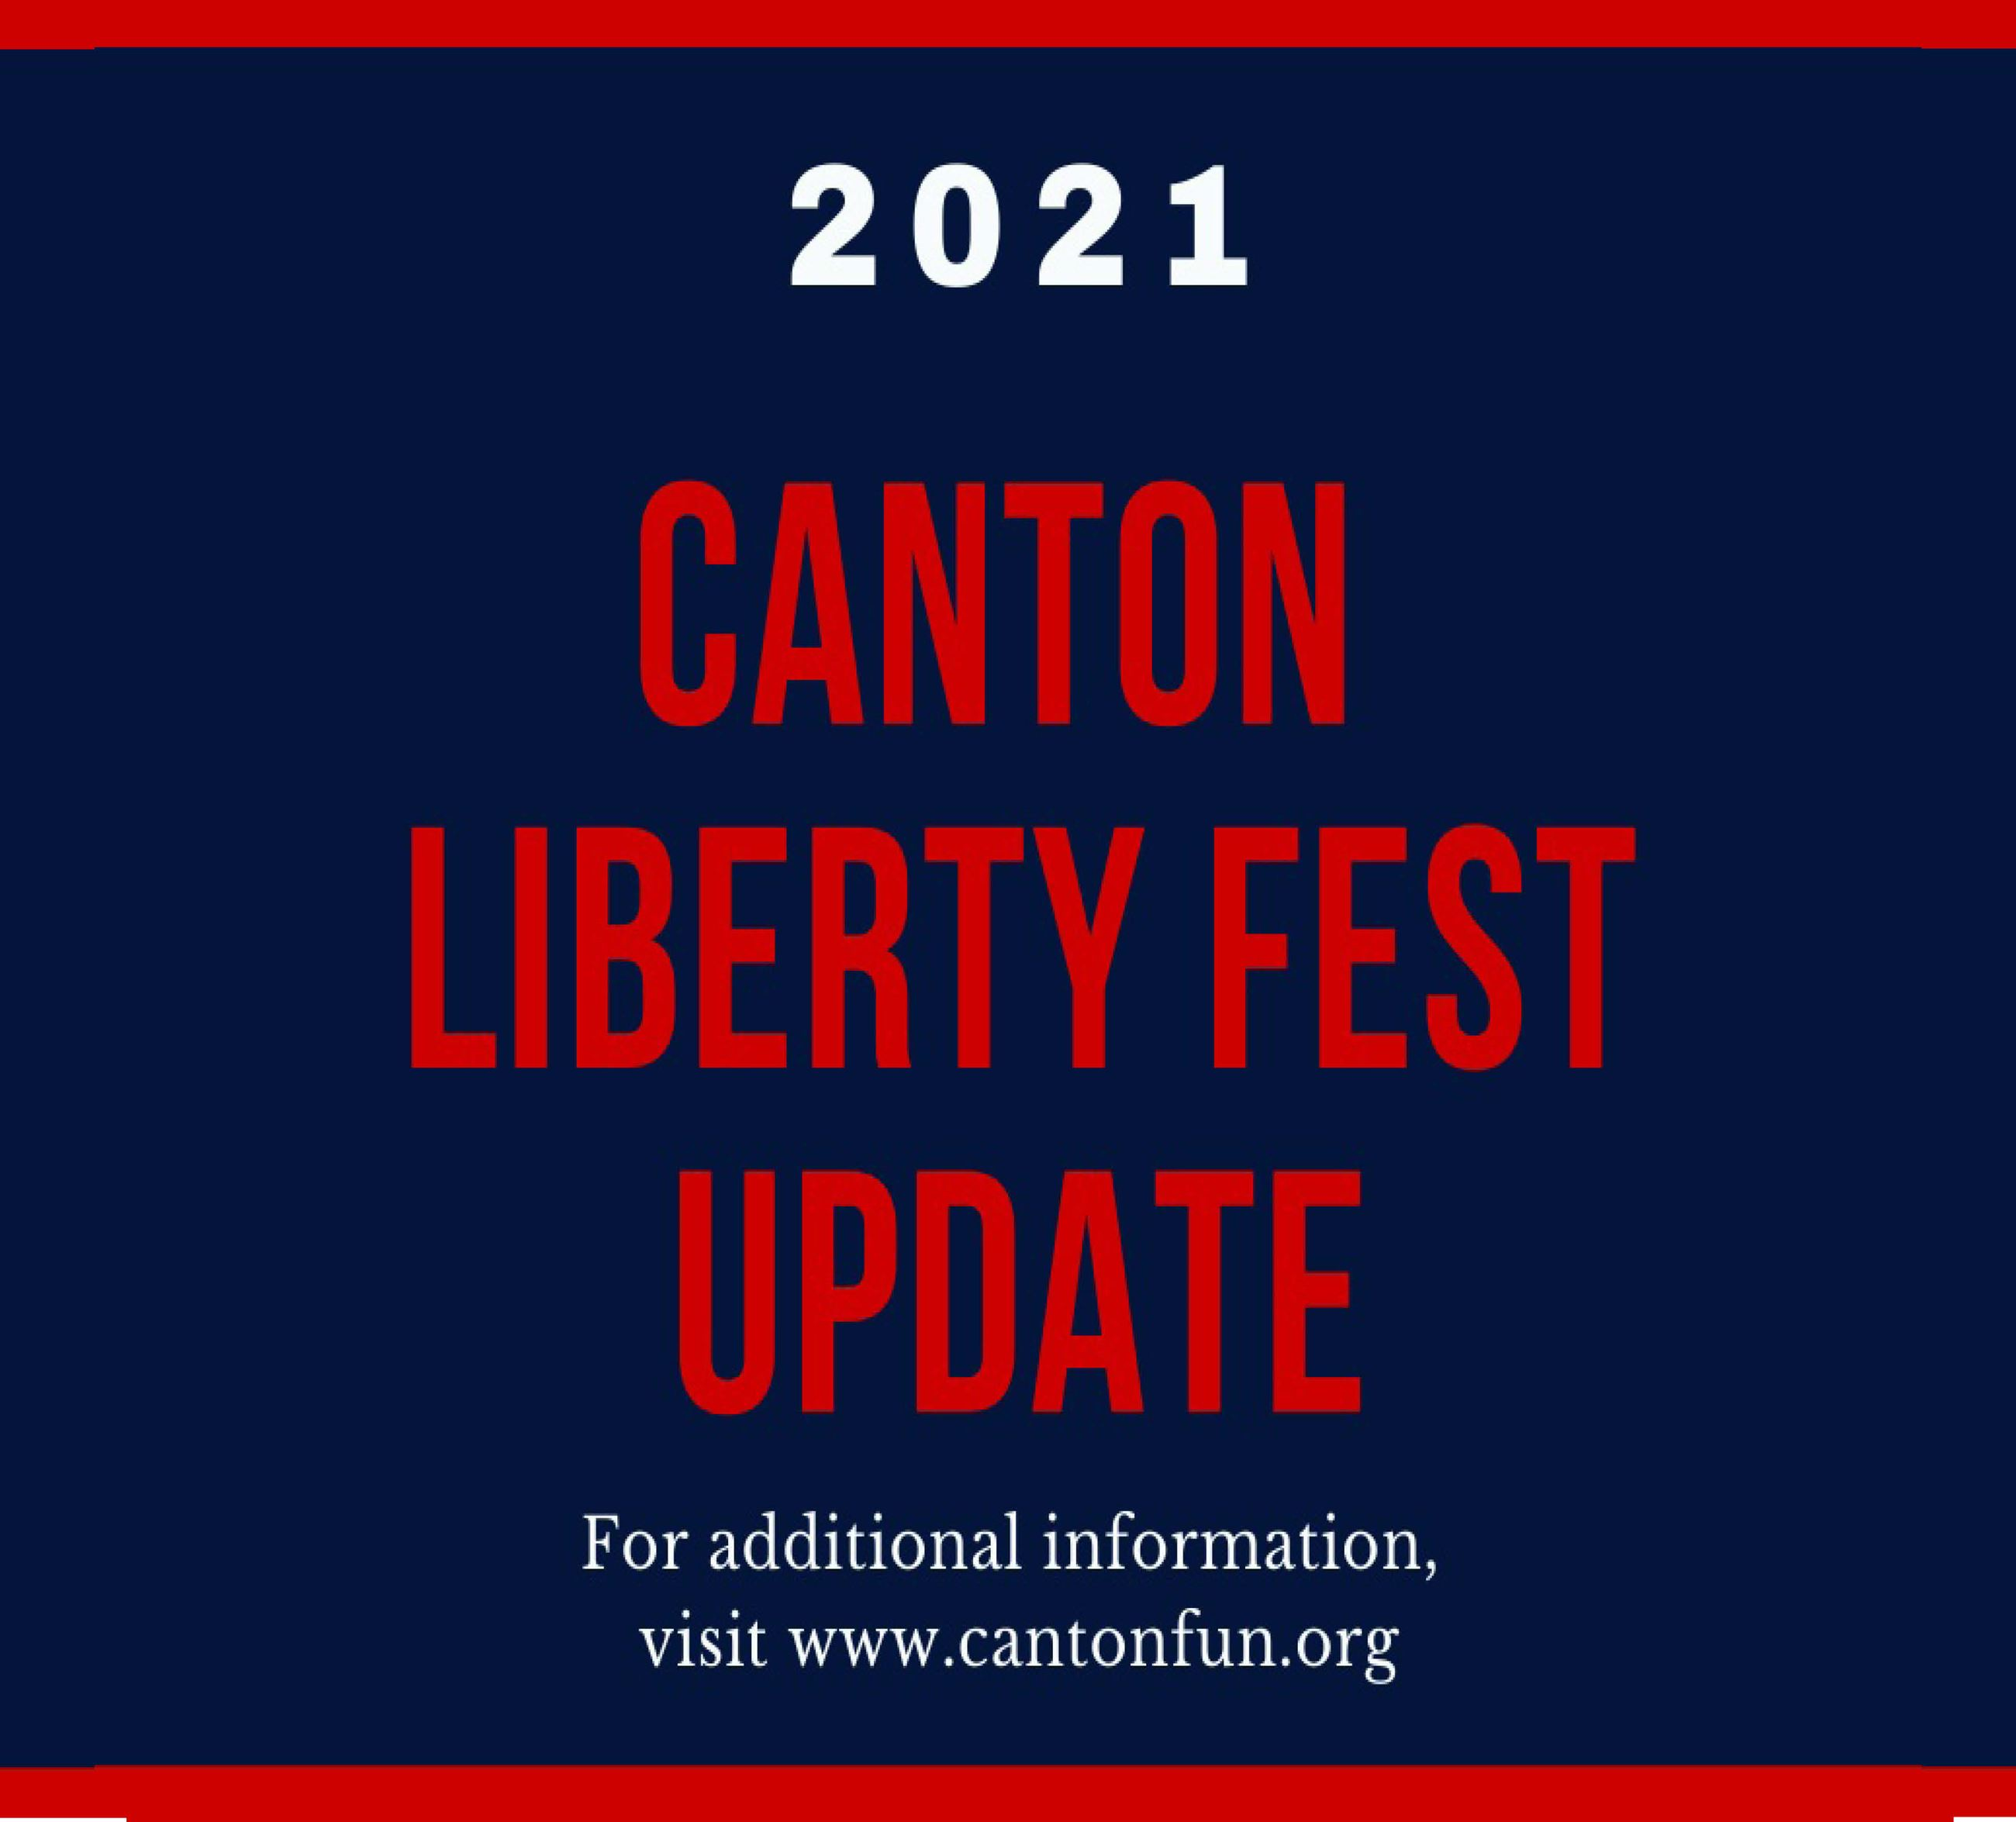 Liberty Fest 2021 Update Graphic